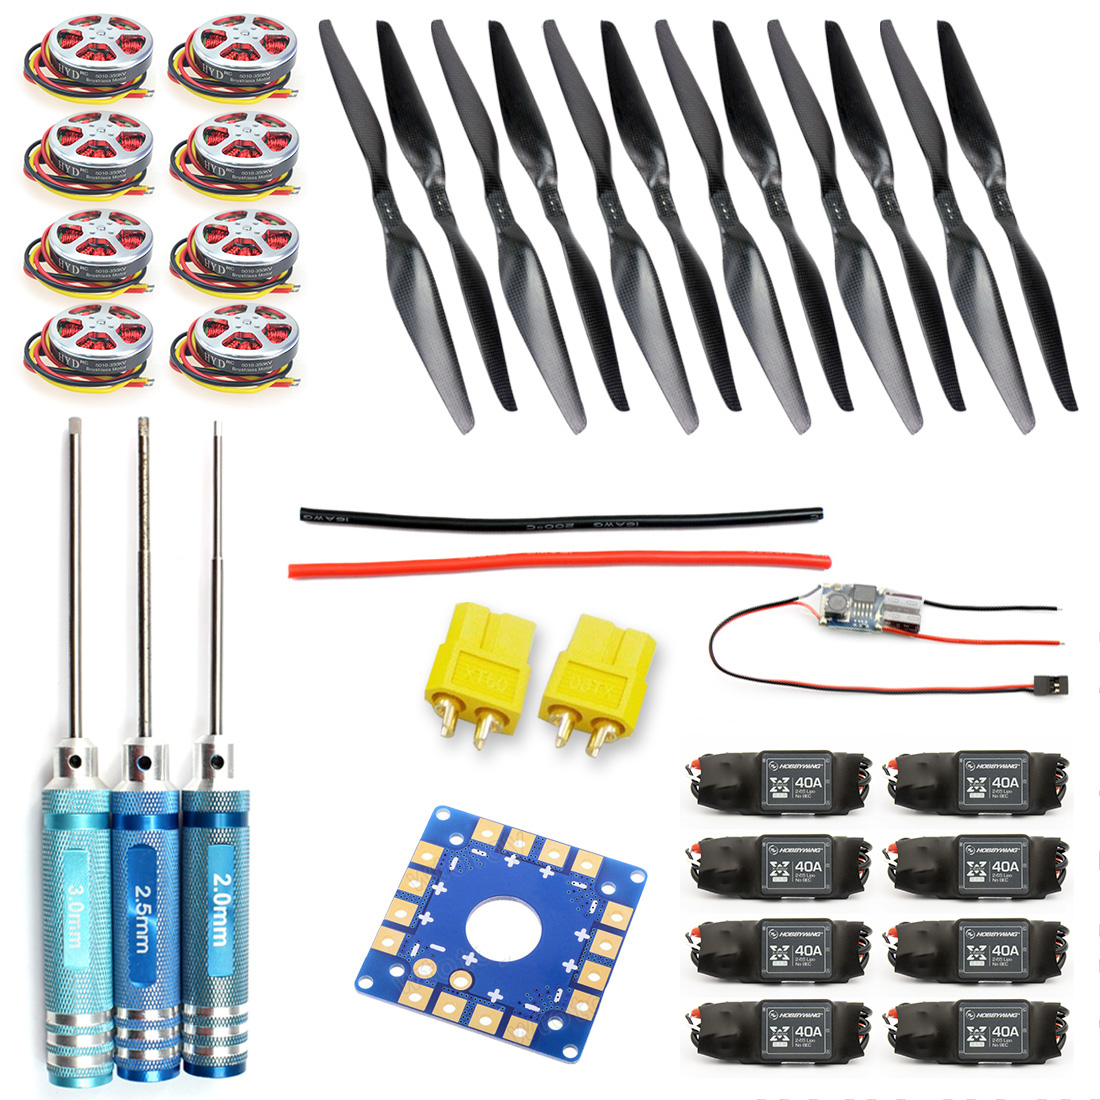 JMT Foldable Rack RC Helicopter Kit KK Connection Board+350KV Brushless Disk Motor+15x5.5 Propeller+40A ESC F05423-C f02015 f 6 axis foldable rack rc quadcopter kit with kk v2 3 circuit board 1000kv brushless motor 10x4 7 propeller 30a esc